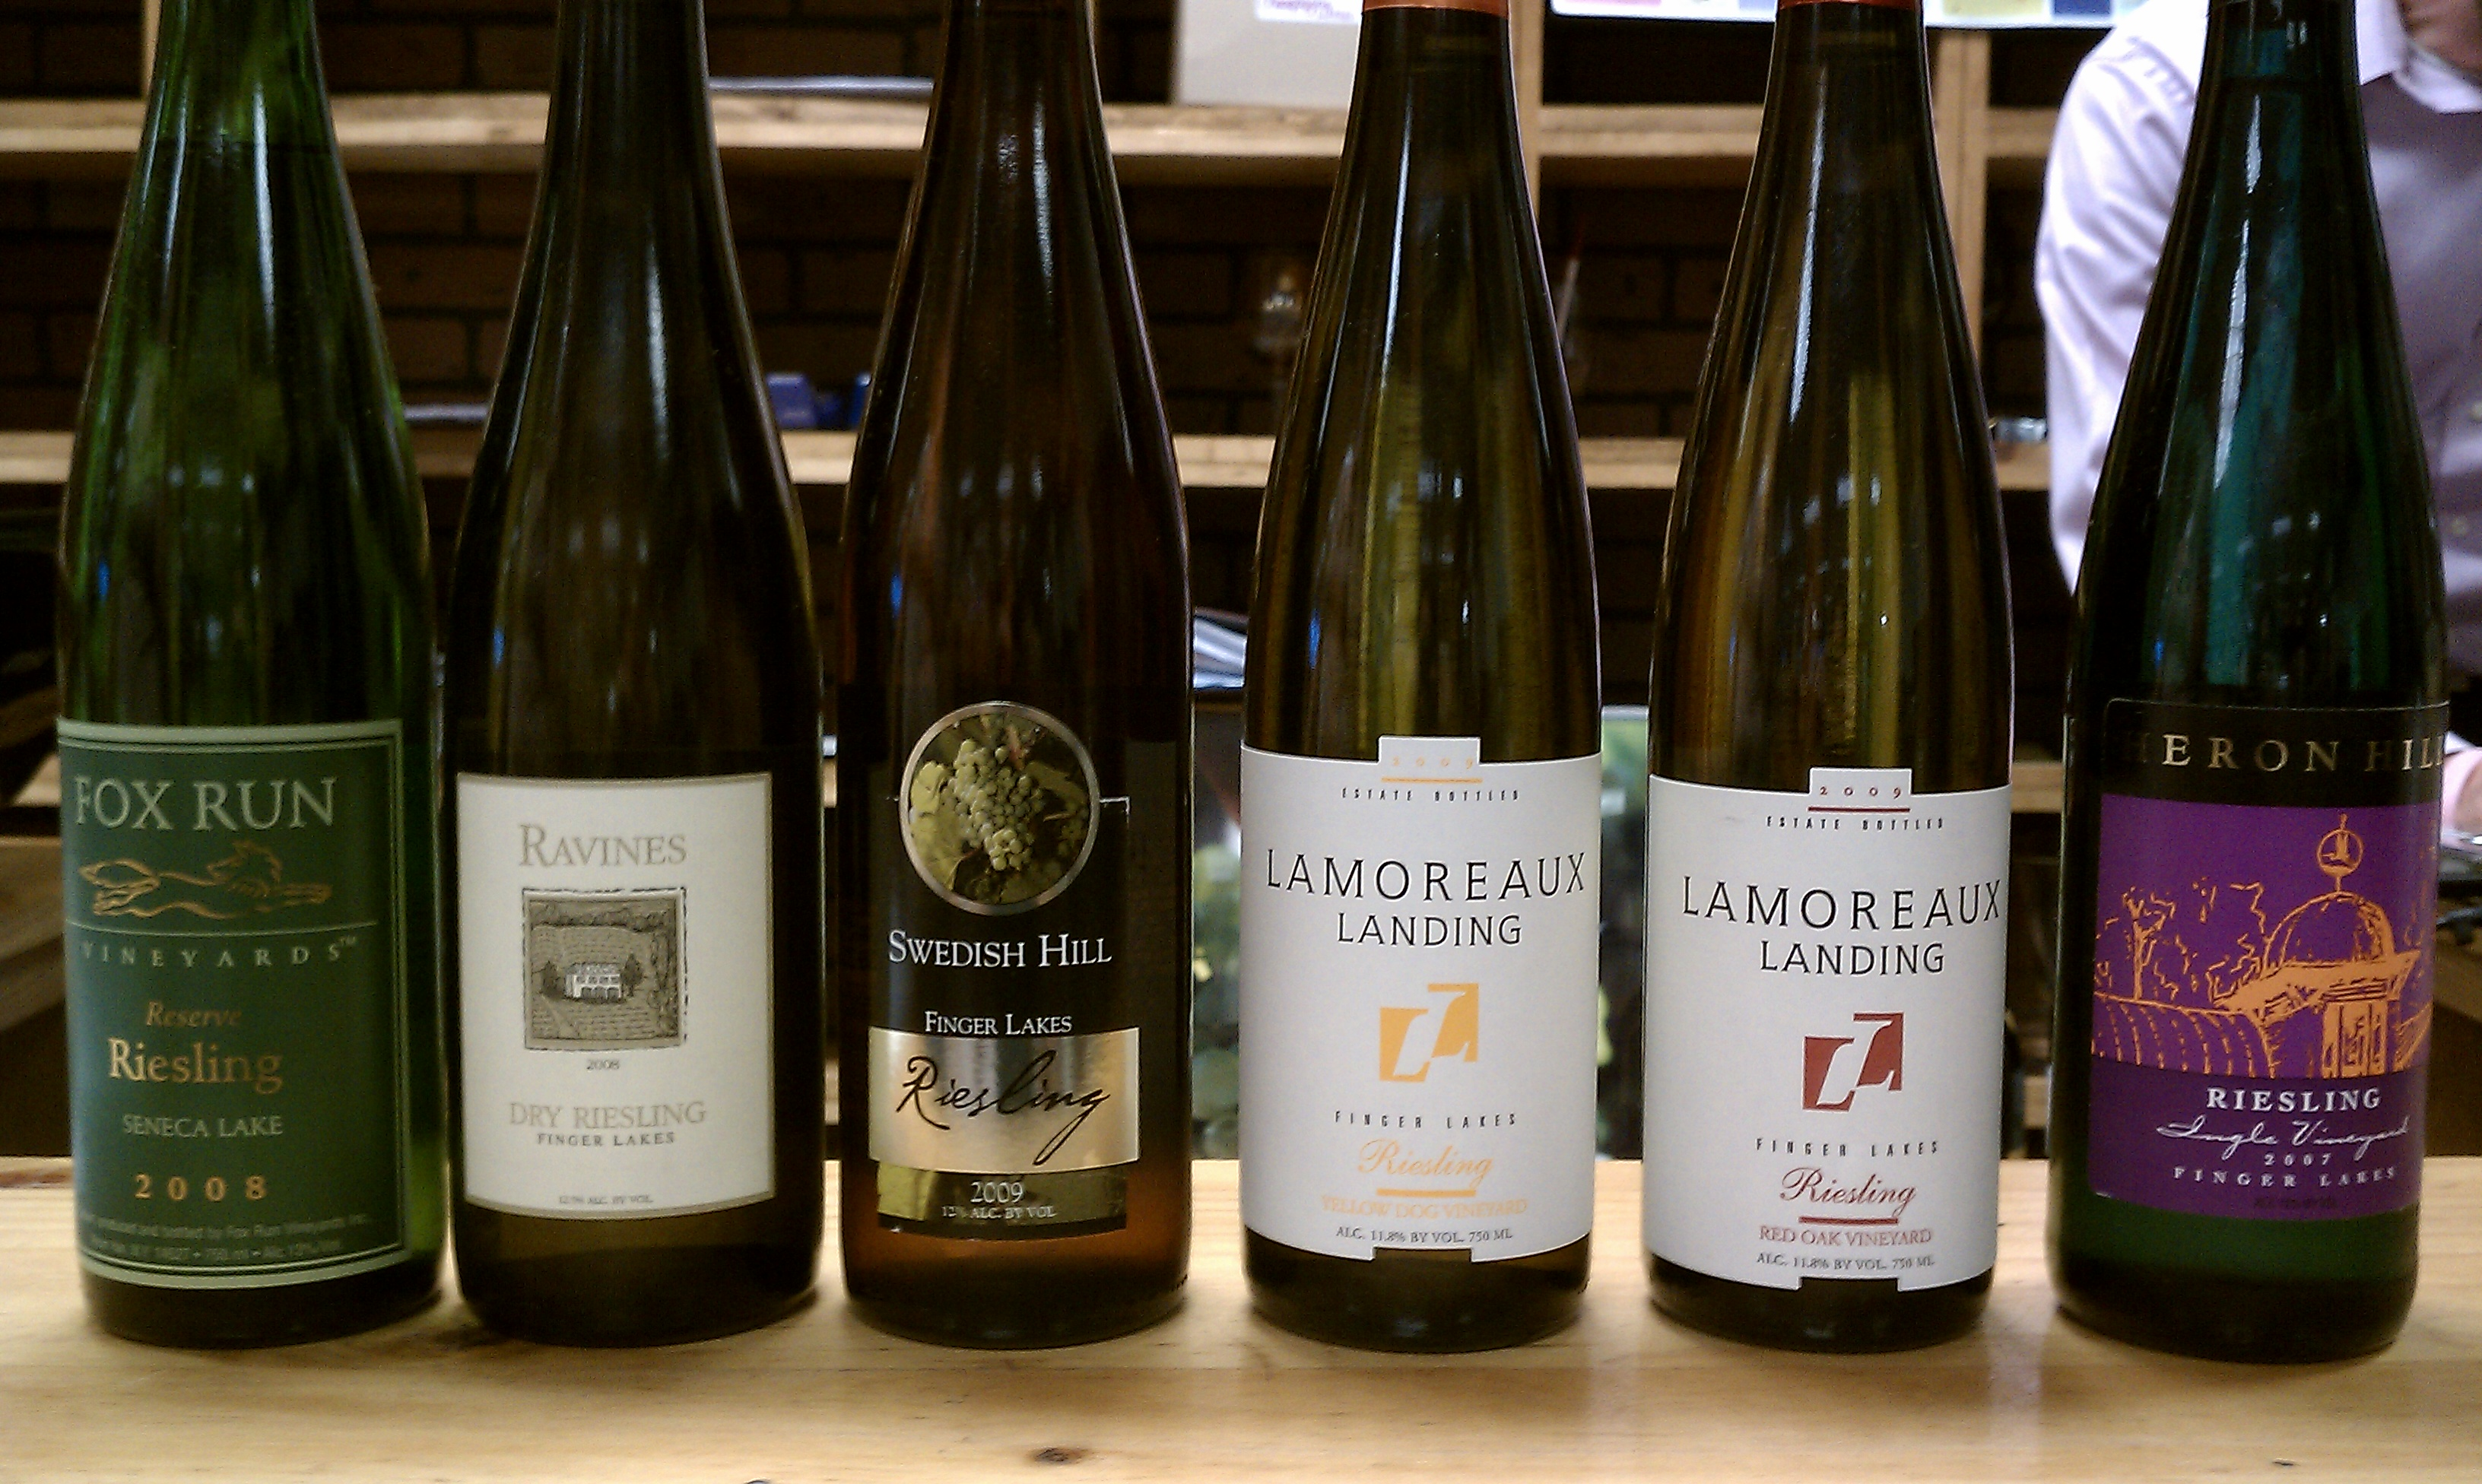 Finger Lakes Riesling